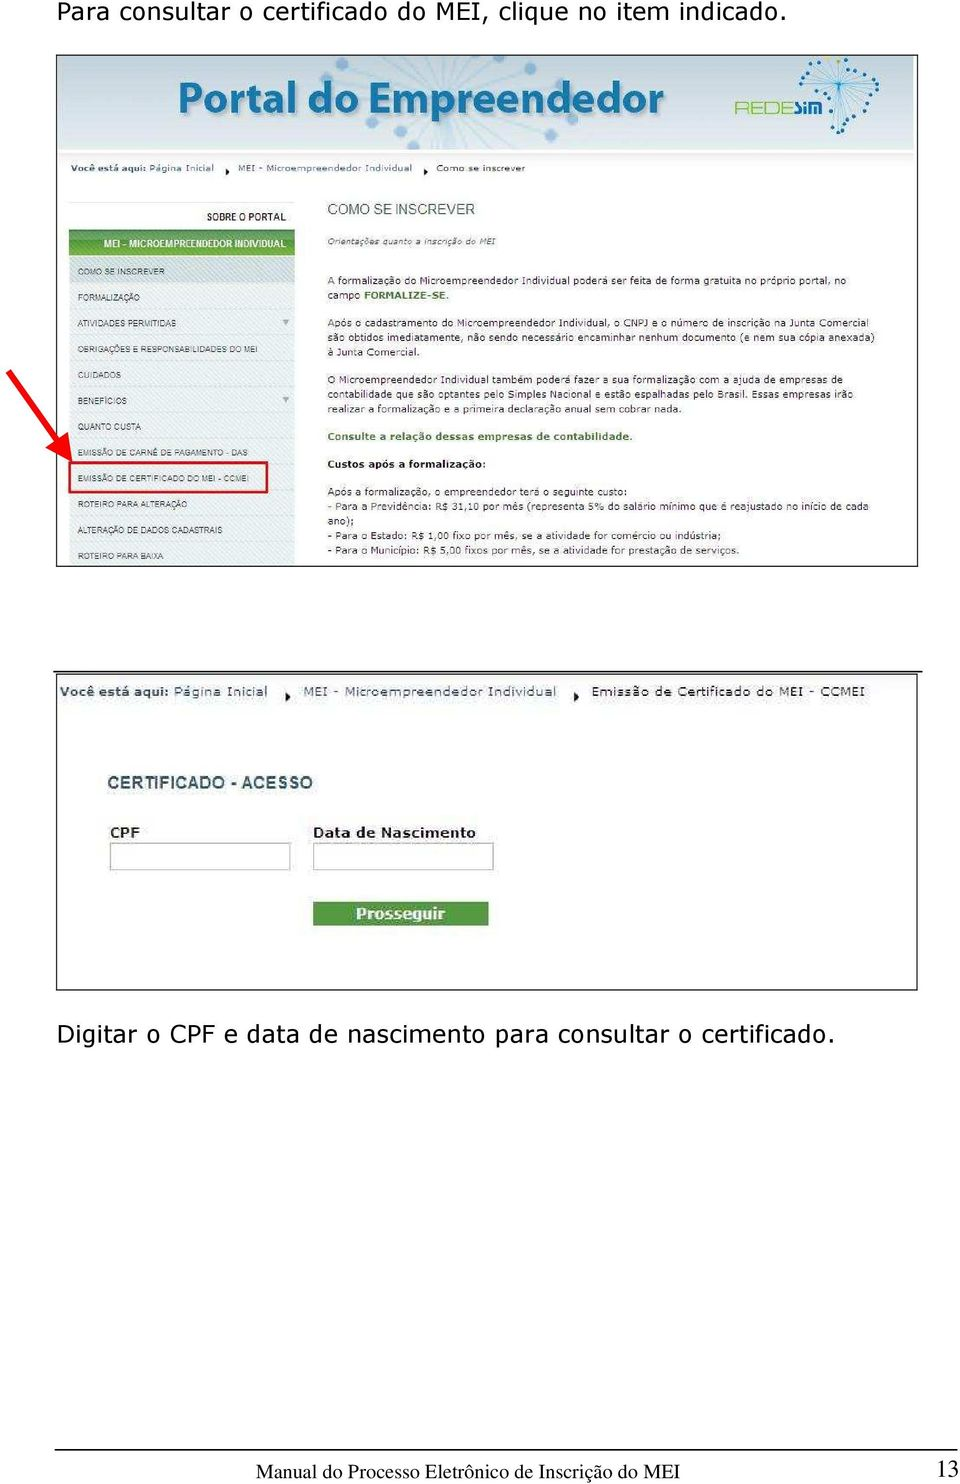 Digitar o CPF e data de nascimento para